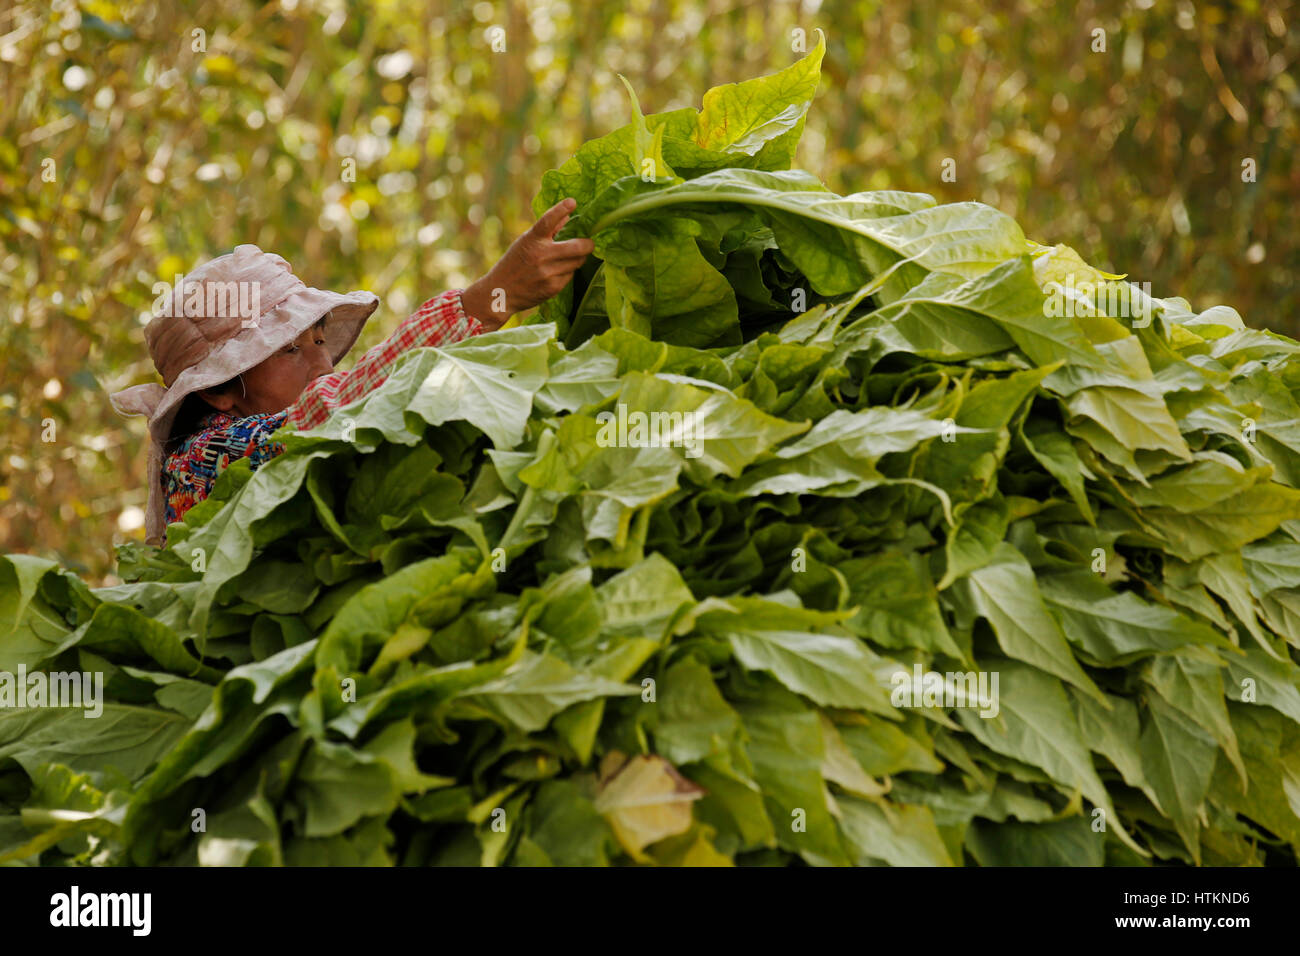 A woman takes tobacco leaves from a pile to string-up and dry during the tobacco harvest at Dion Tou village, near - Stock Image